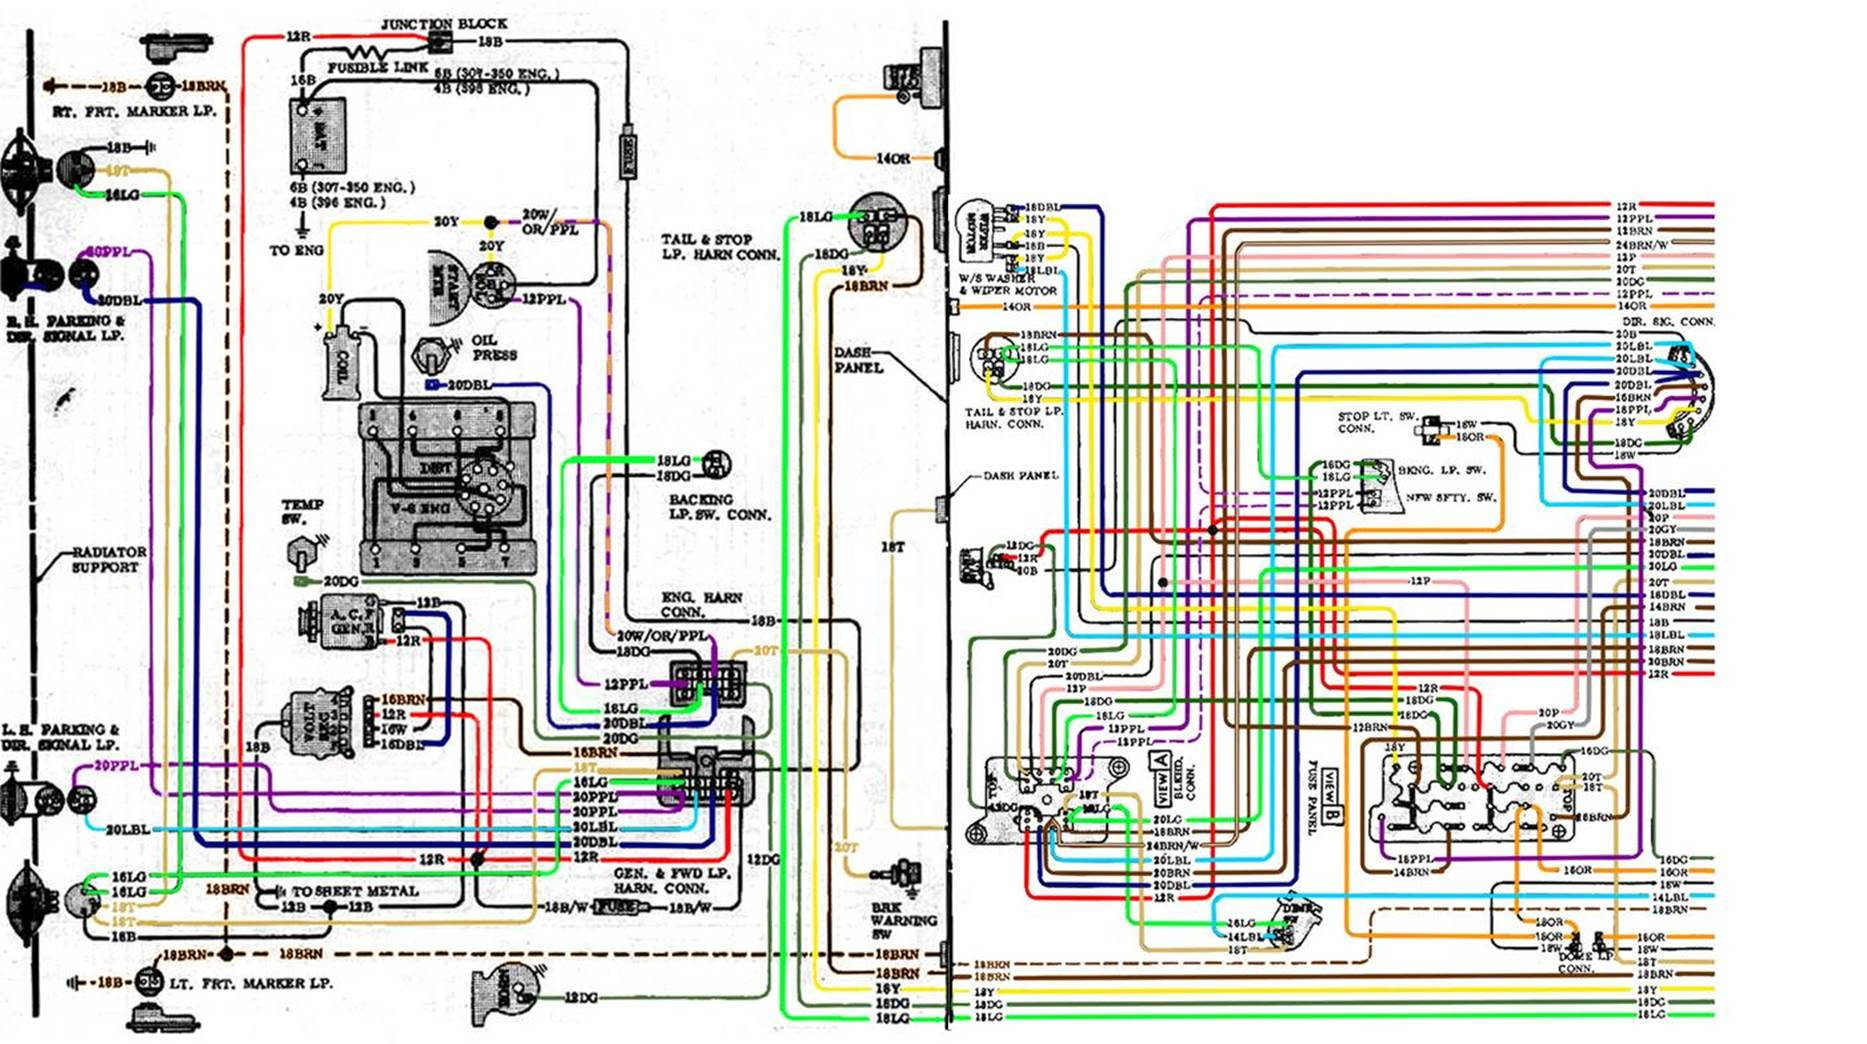 image002 gm wiring diagrams 95 98 gm truck wiring diagrams \u2022 wiring  at readyjetset.co